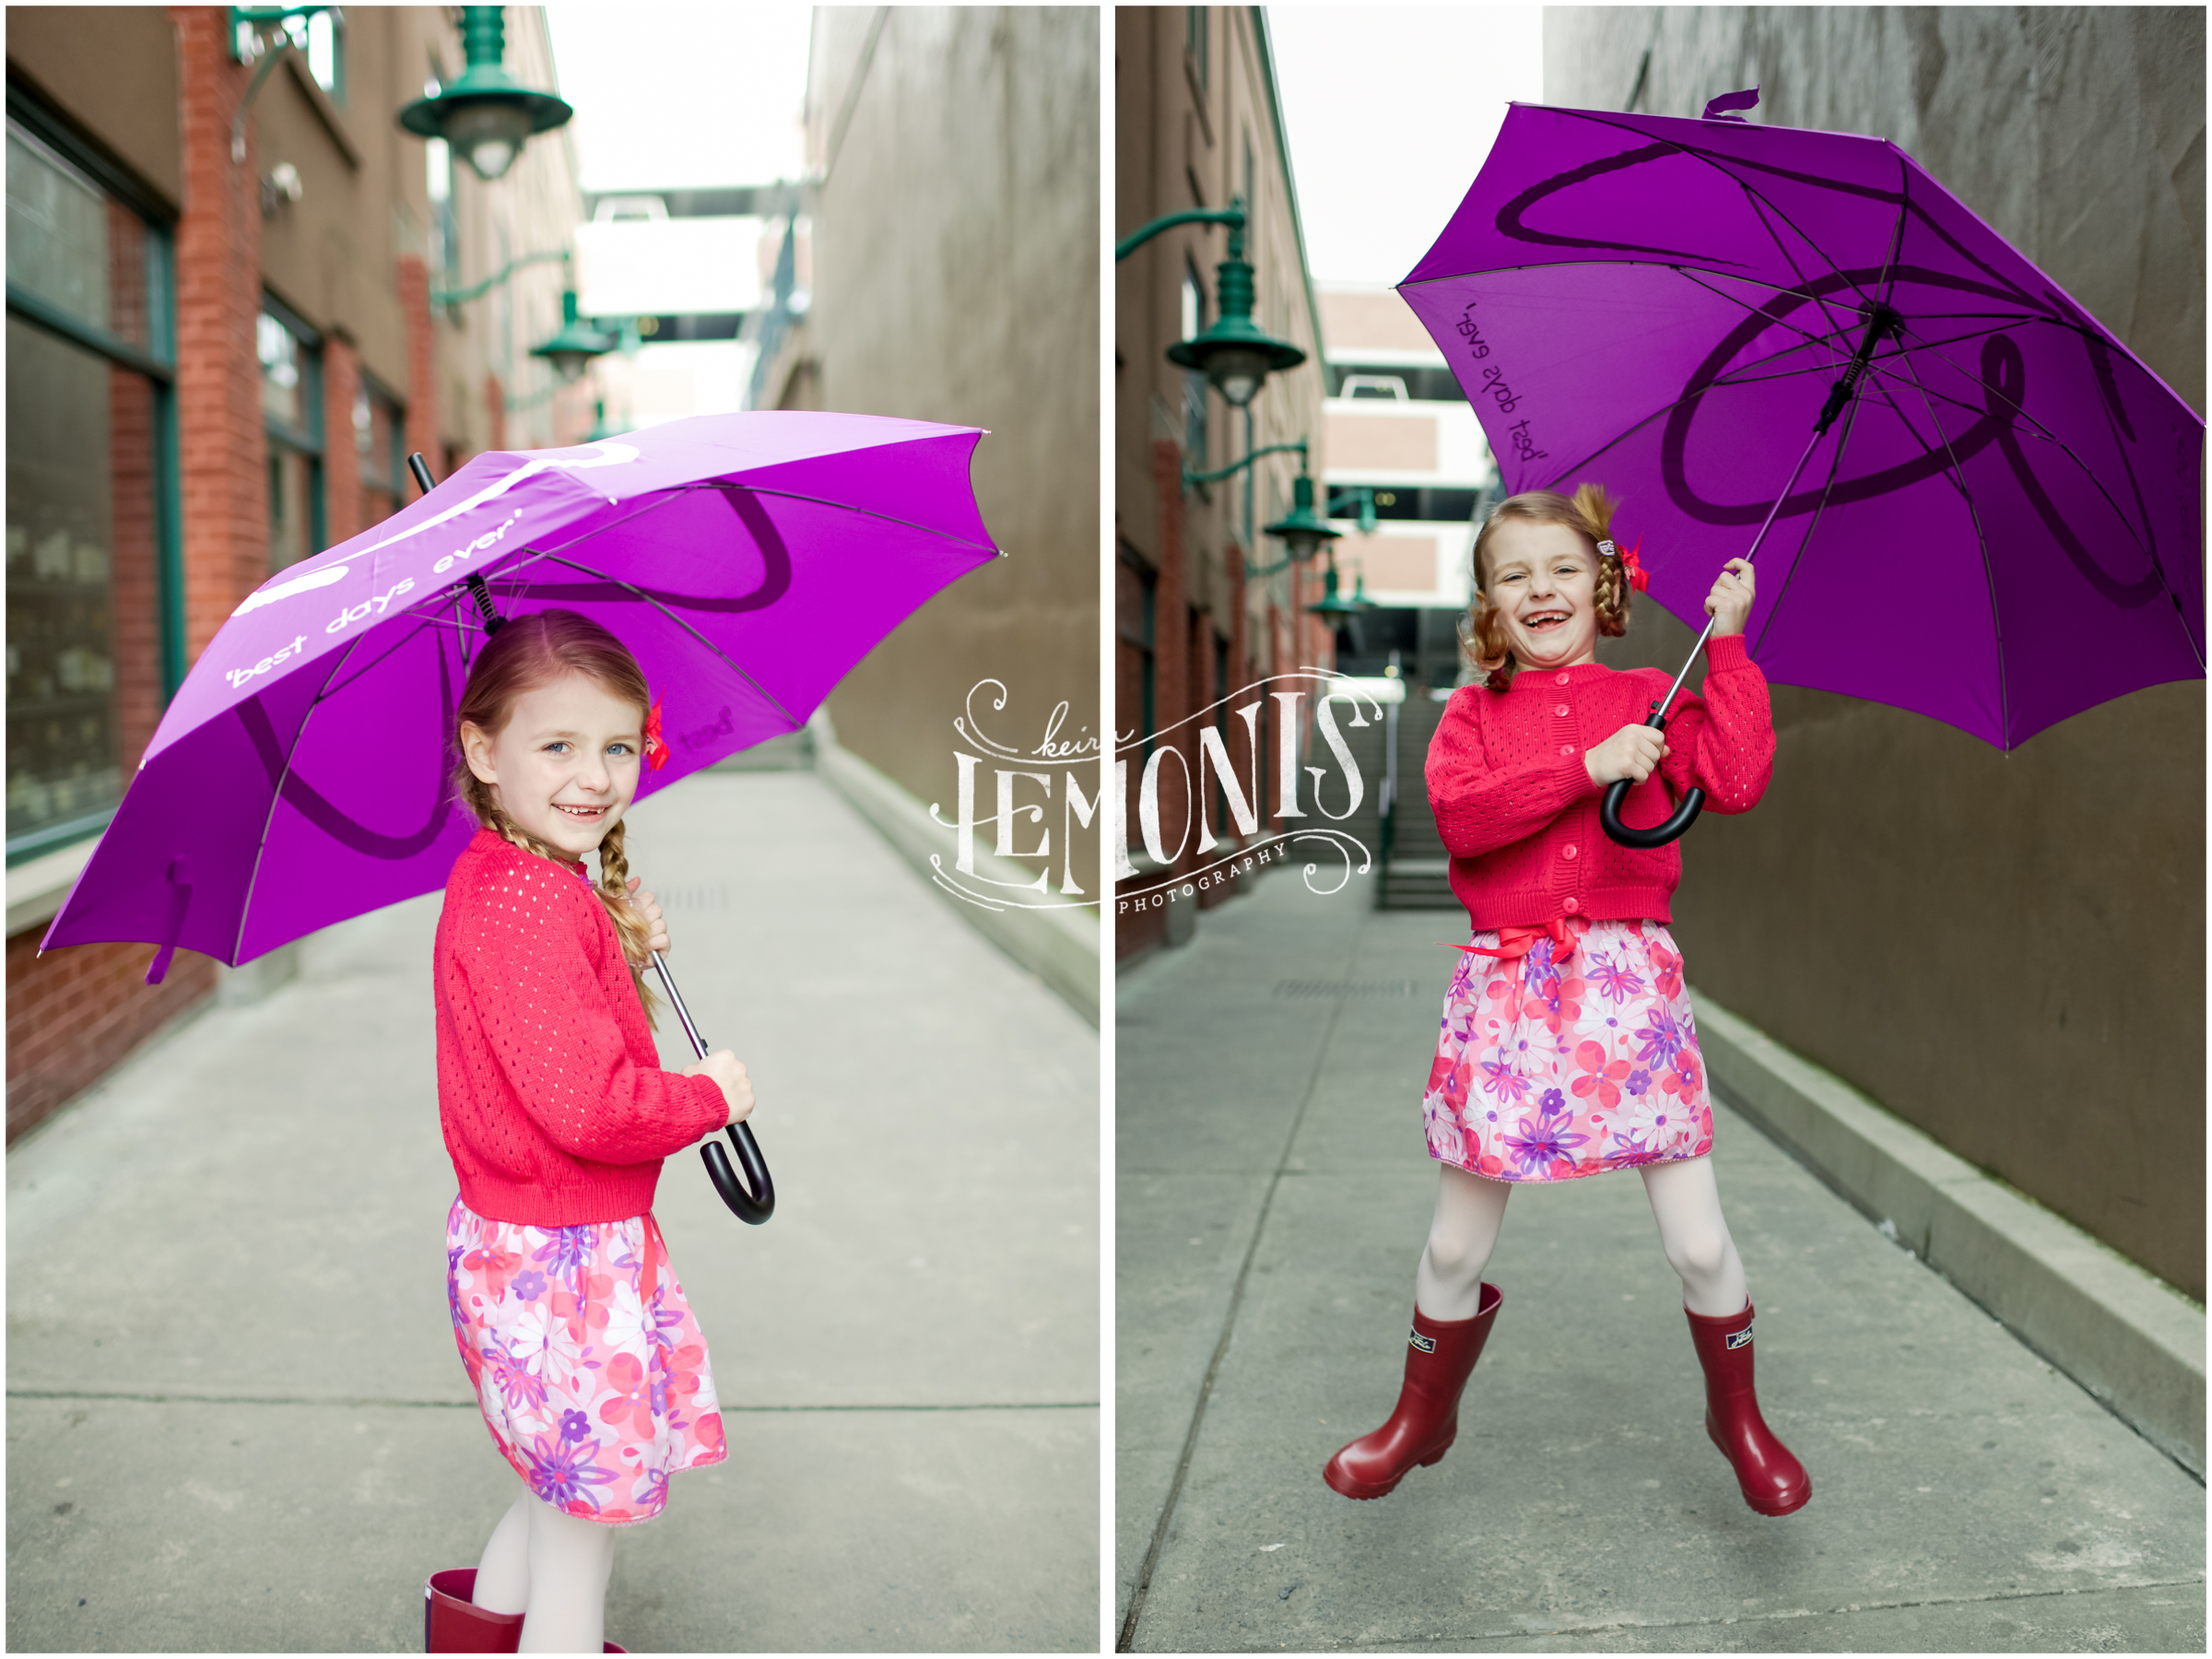 Here are two cute photos from the cover shoot!